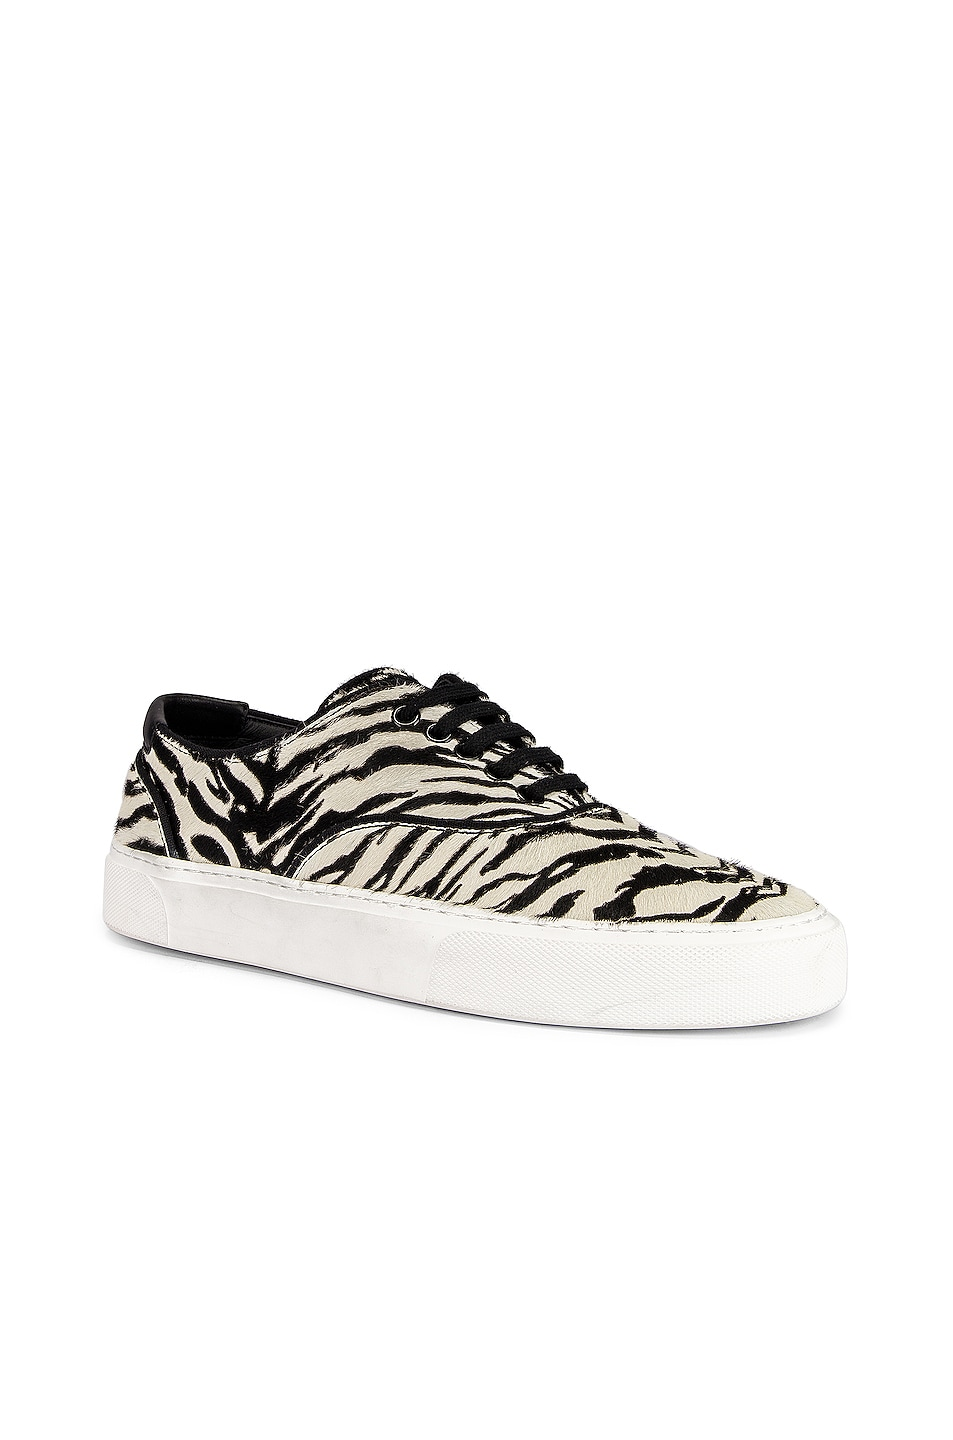 Image 2 of Saint Laurent Zebra Low Top Sneakers in Black & White